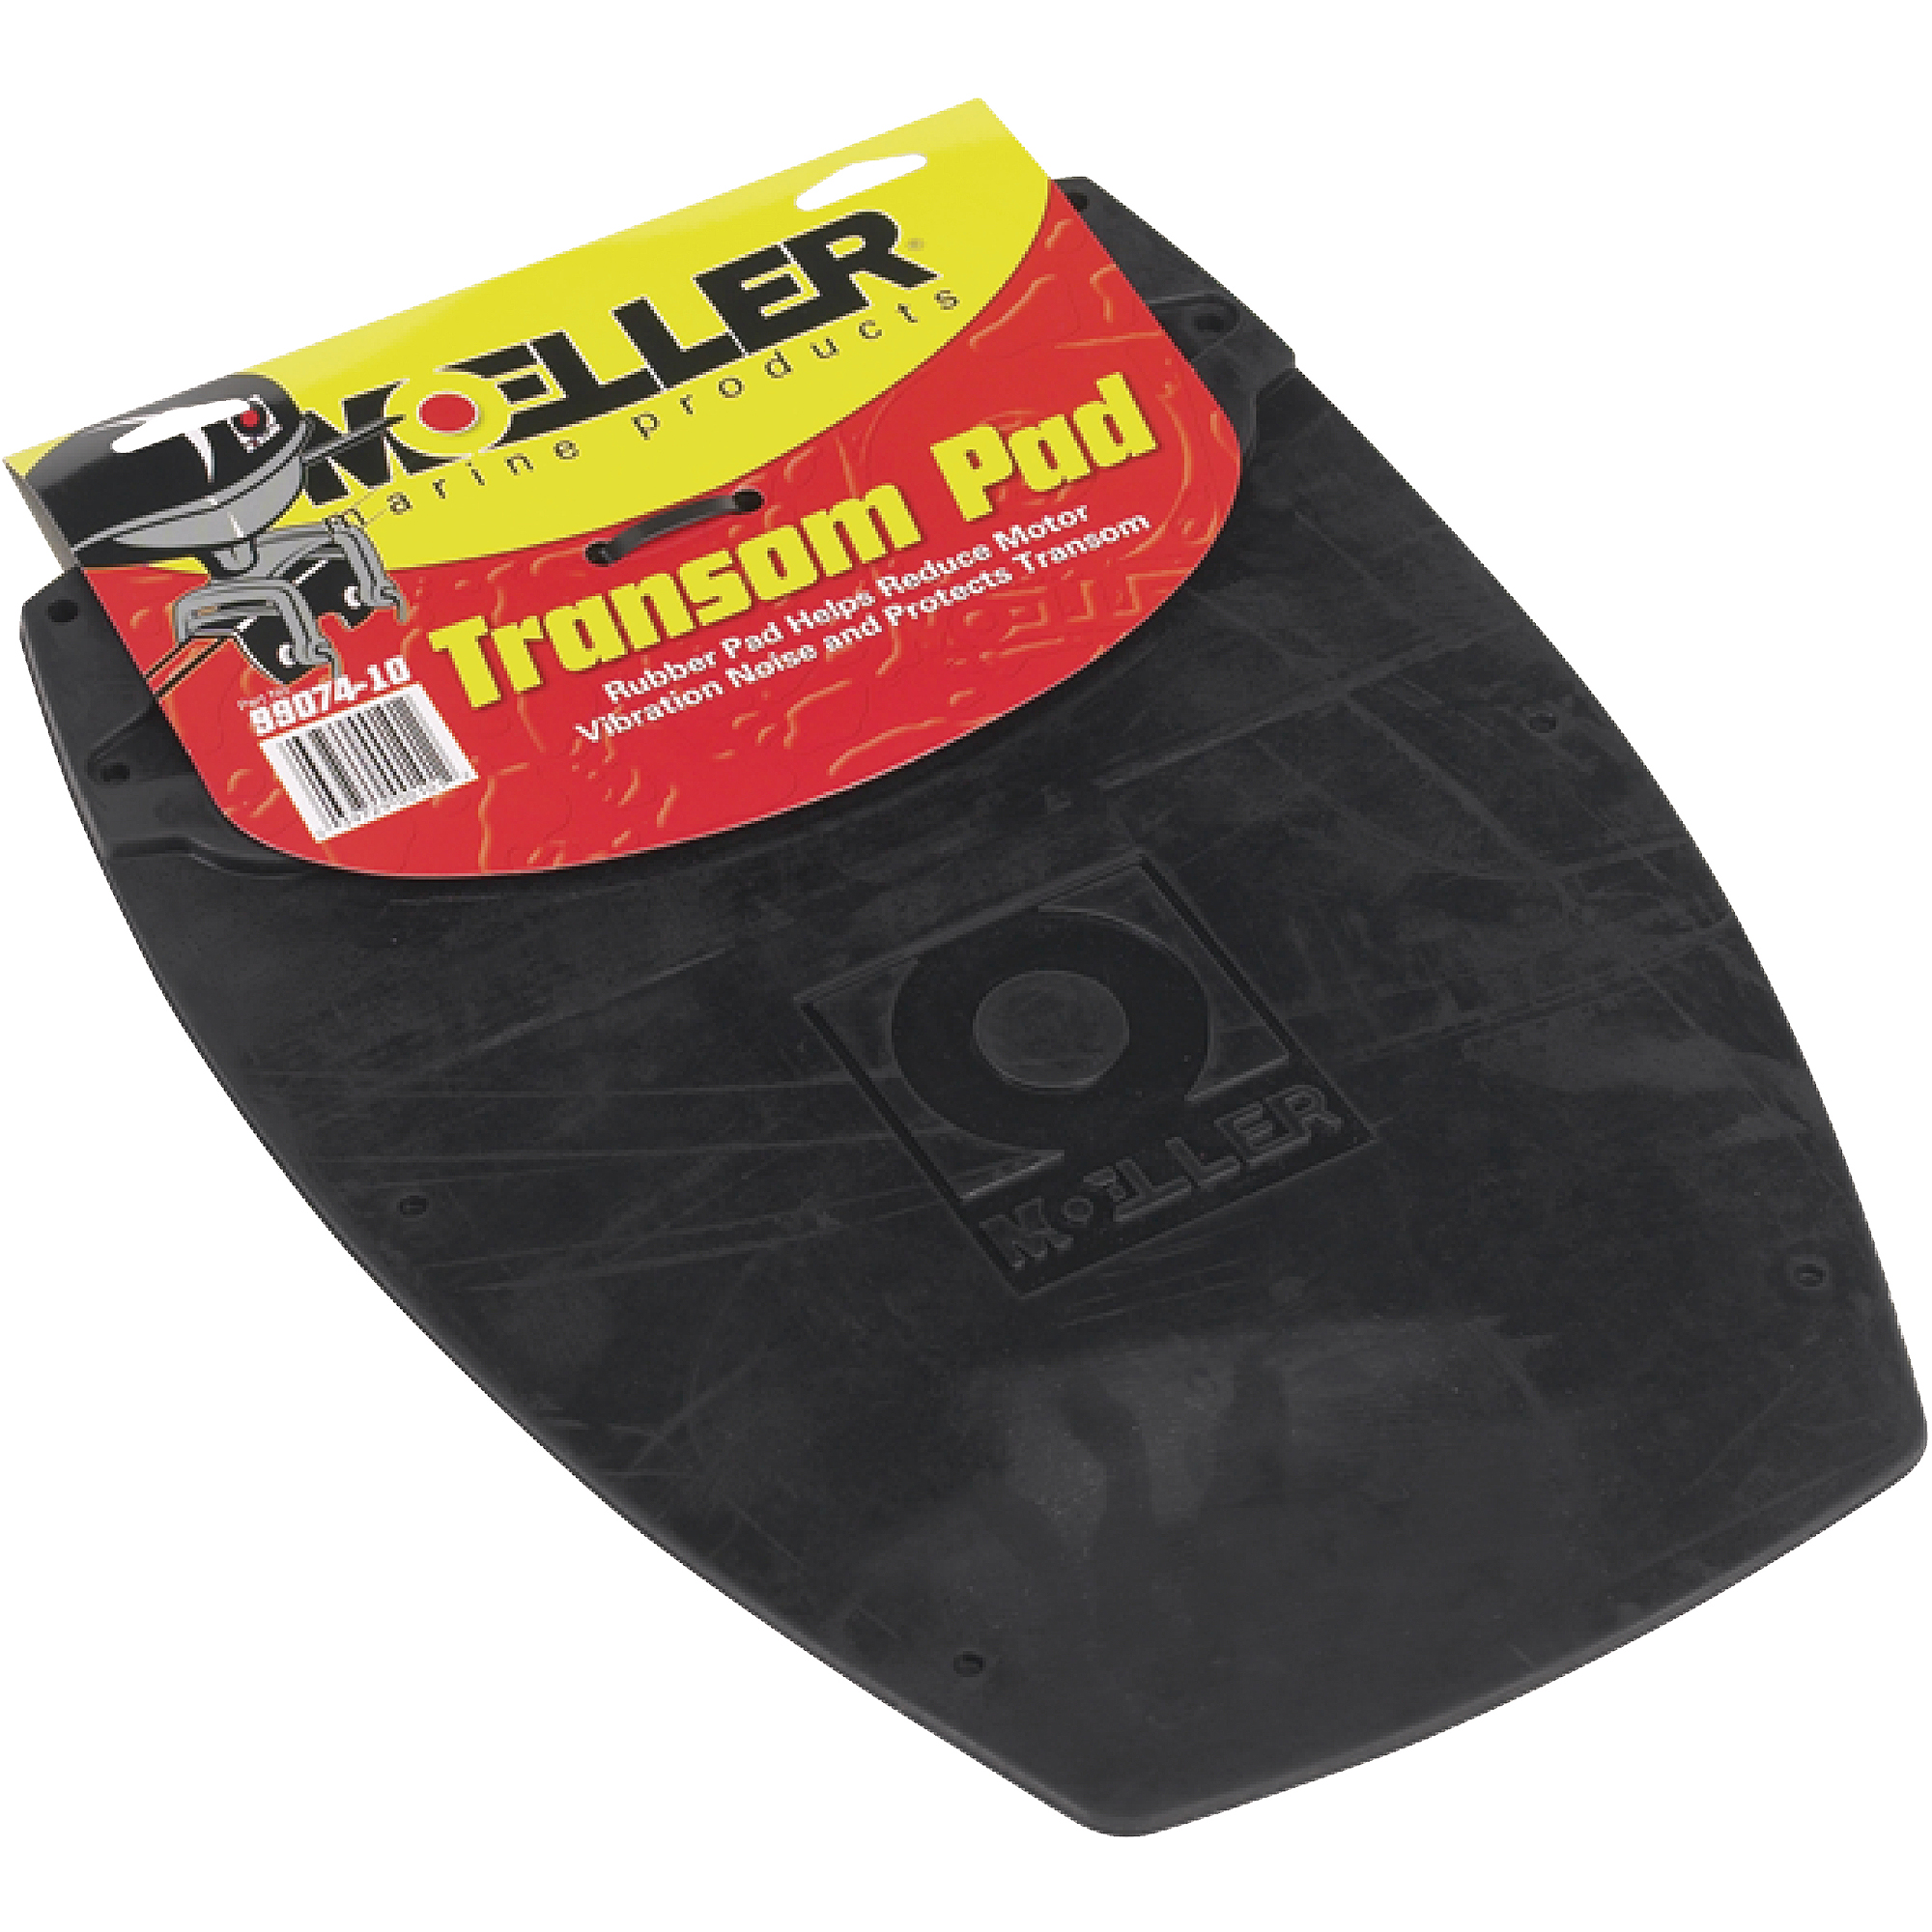 Moeller Transom Pad Fits Most Outboards Up to 25 HP